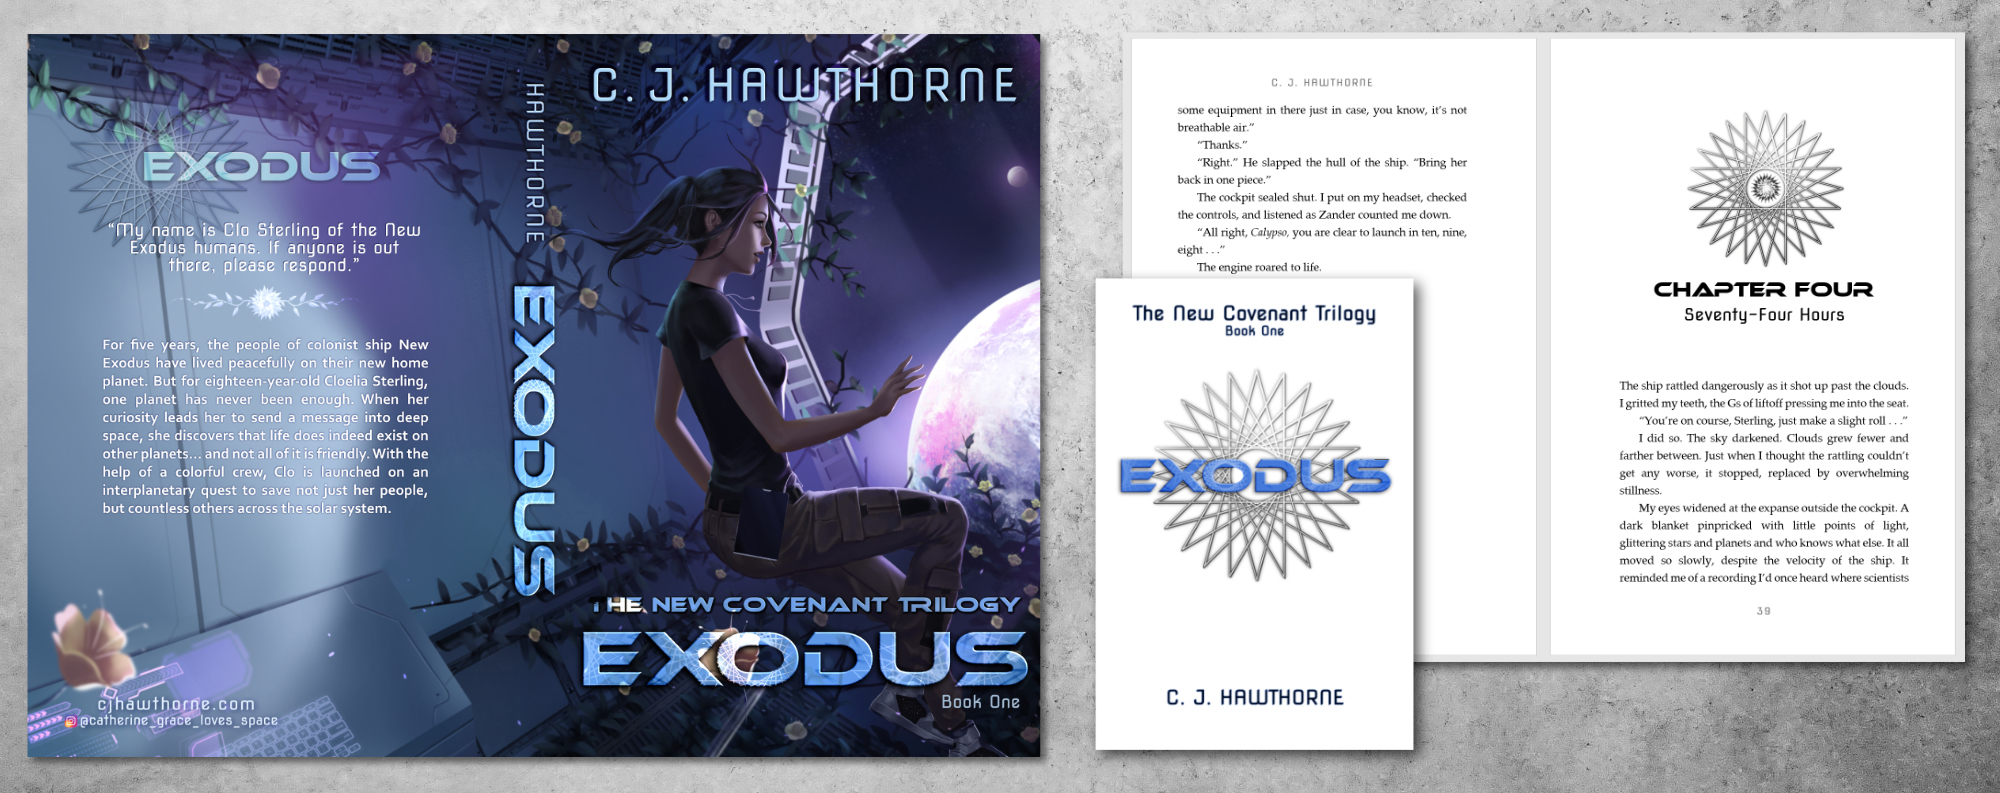 Example image of book Exodus by C. J. Hawthorne